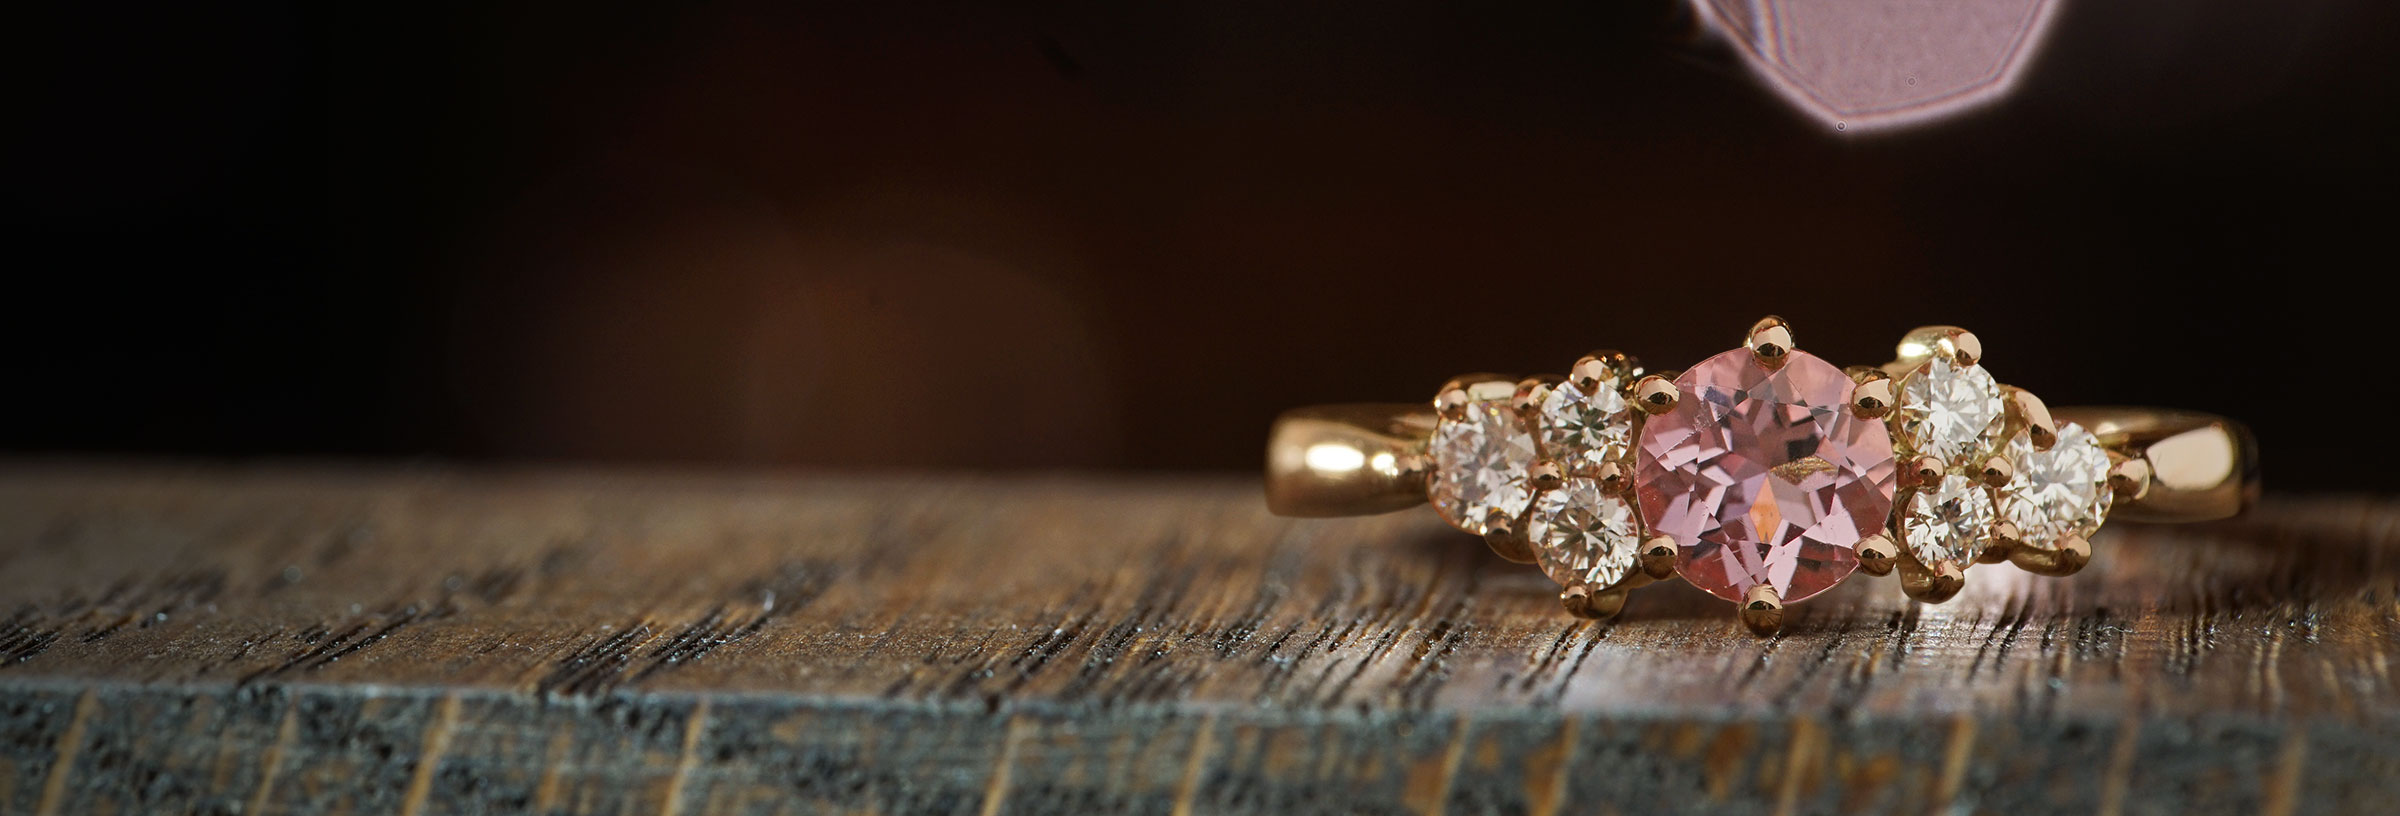 rose-gold-diamond-and-morganite-cluster-engagement-ring